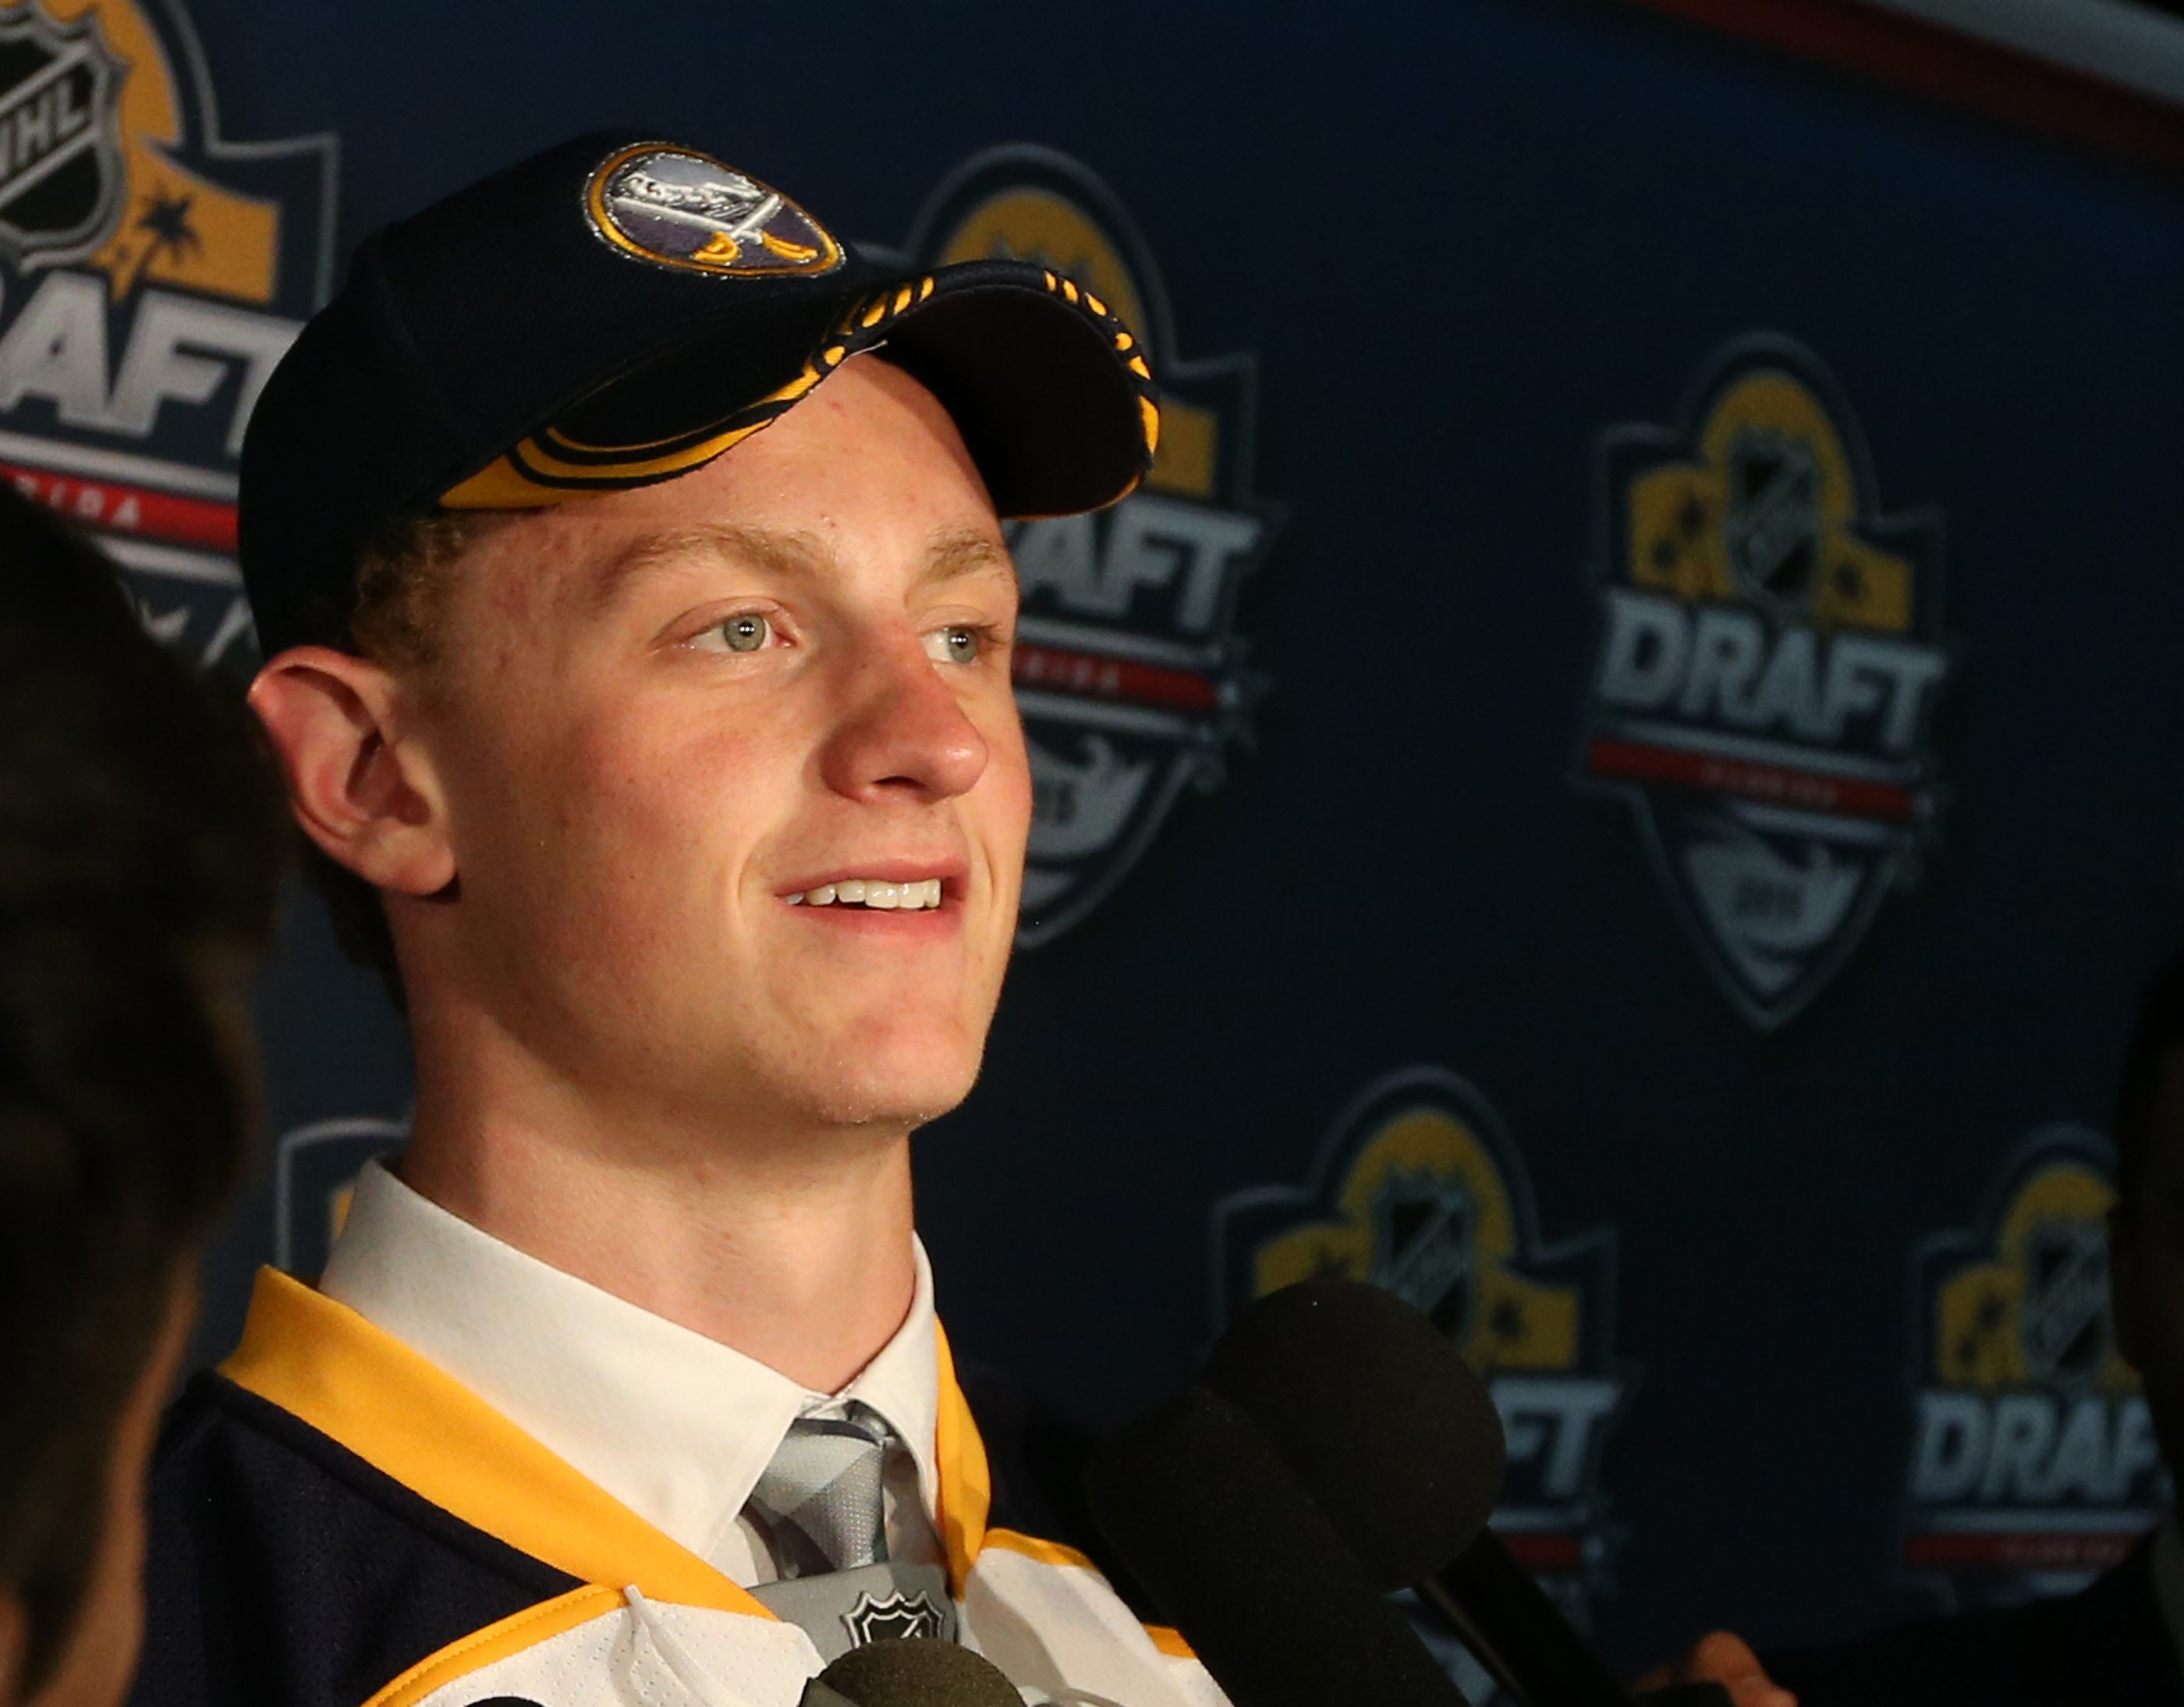 Jack Eichel makes the press run in the halls of the arena after being selected by the Buffalo sabers as the second overall pick of the NHL Draft tonight at the BB & T Center in Sunrise,Fl on Friday, June 26, 2015.  (James P. McCoy/ Buffalo News)